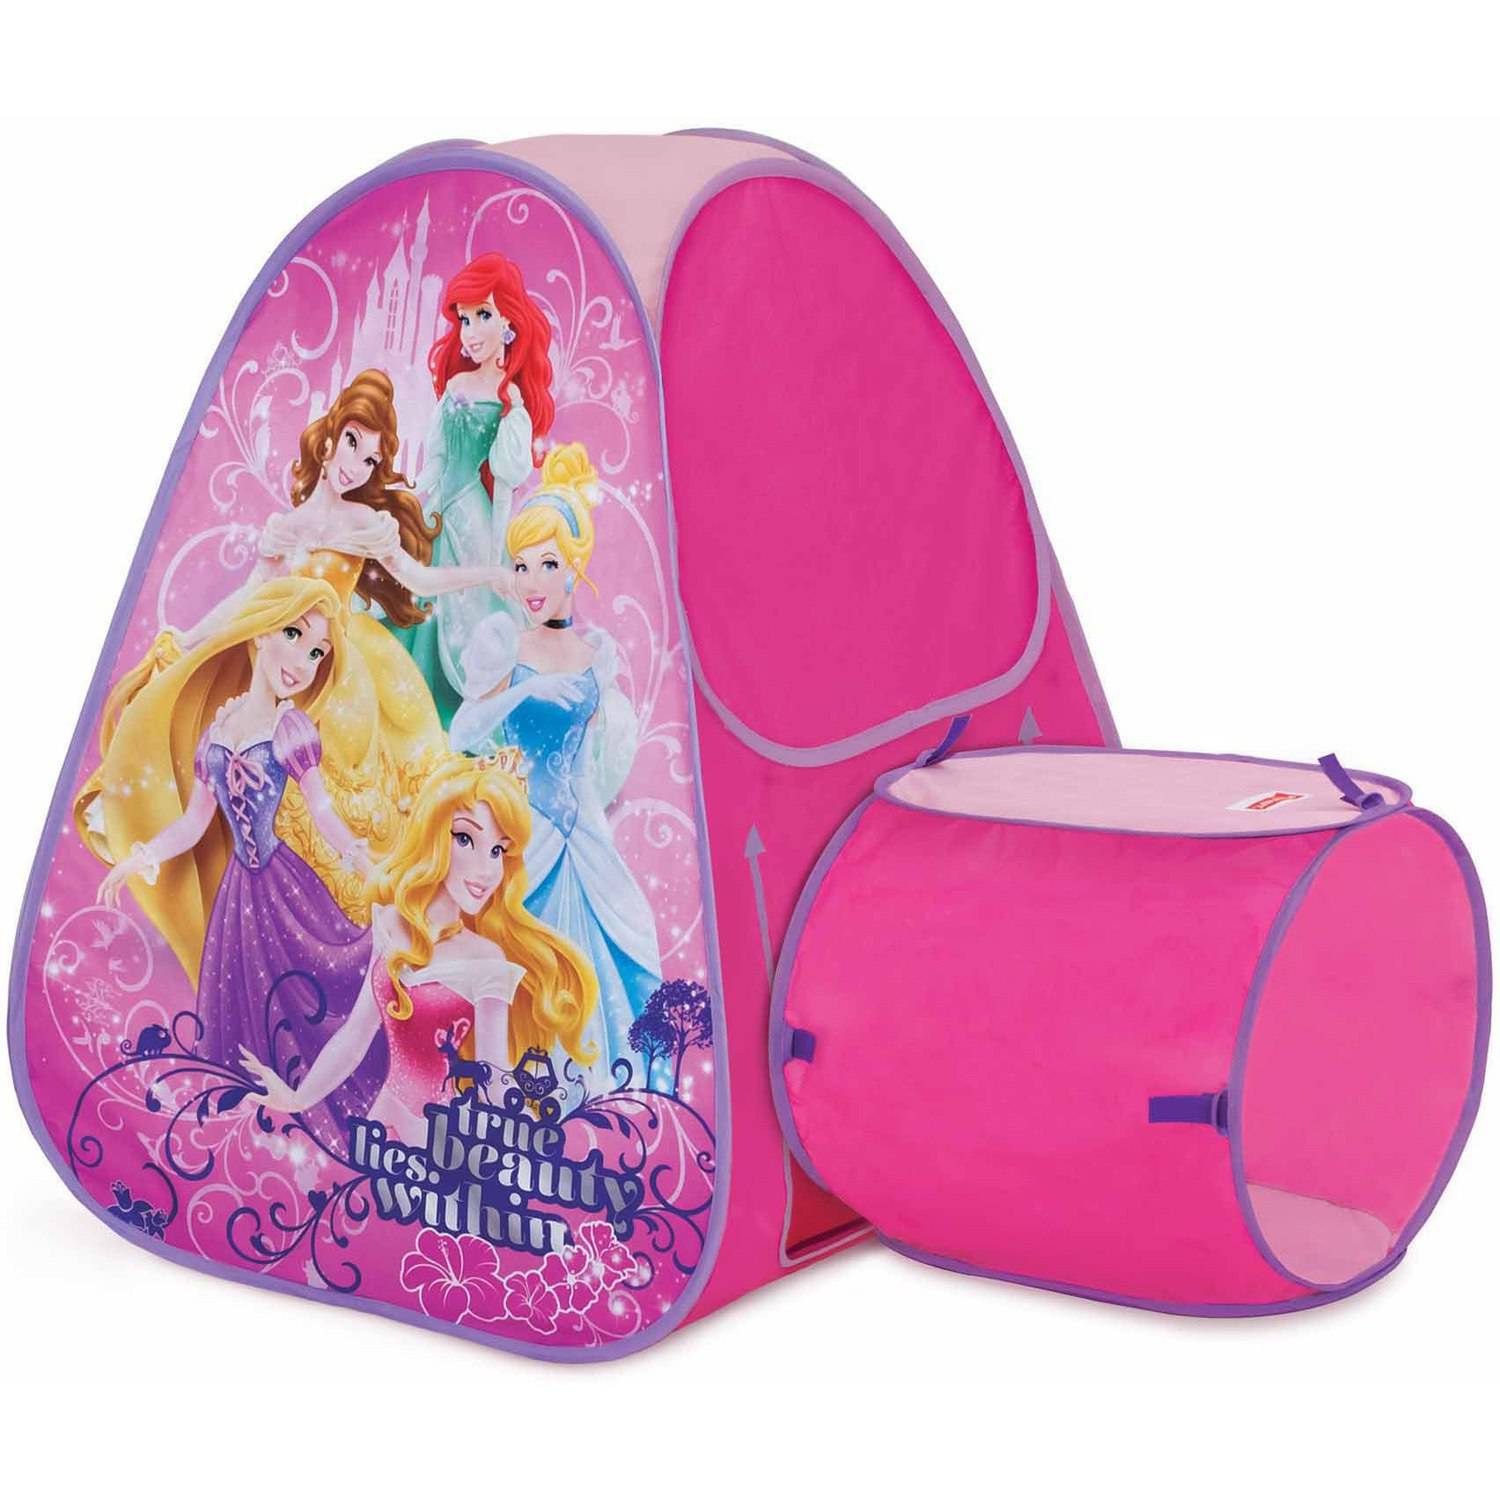 Playhut Disney Princess Hide About Tent and Tunnel Port  sc 1 st  Walmart & Playhut Disney Princess Hide About Tent and Tunnel Port - Walmart.com